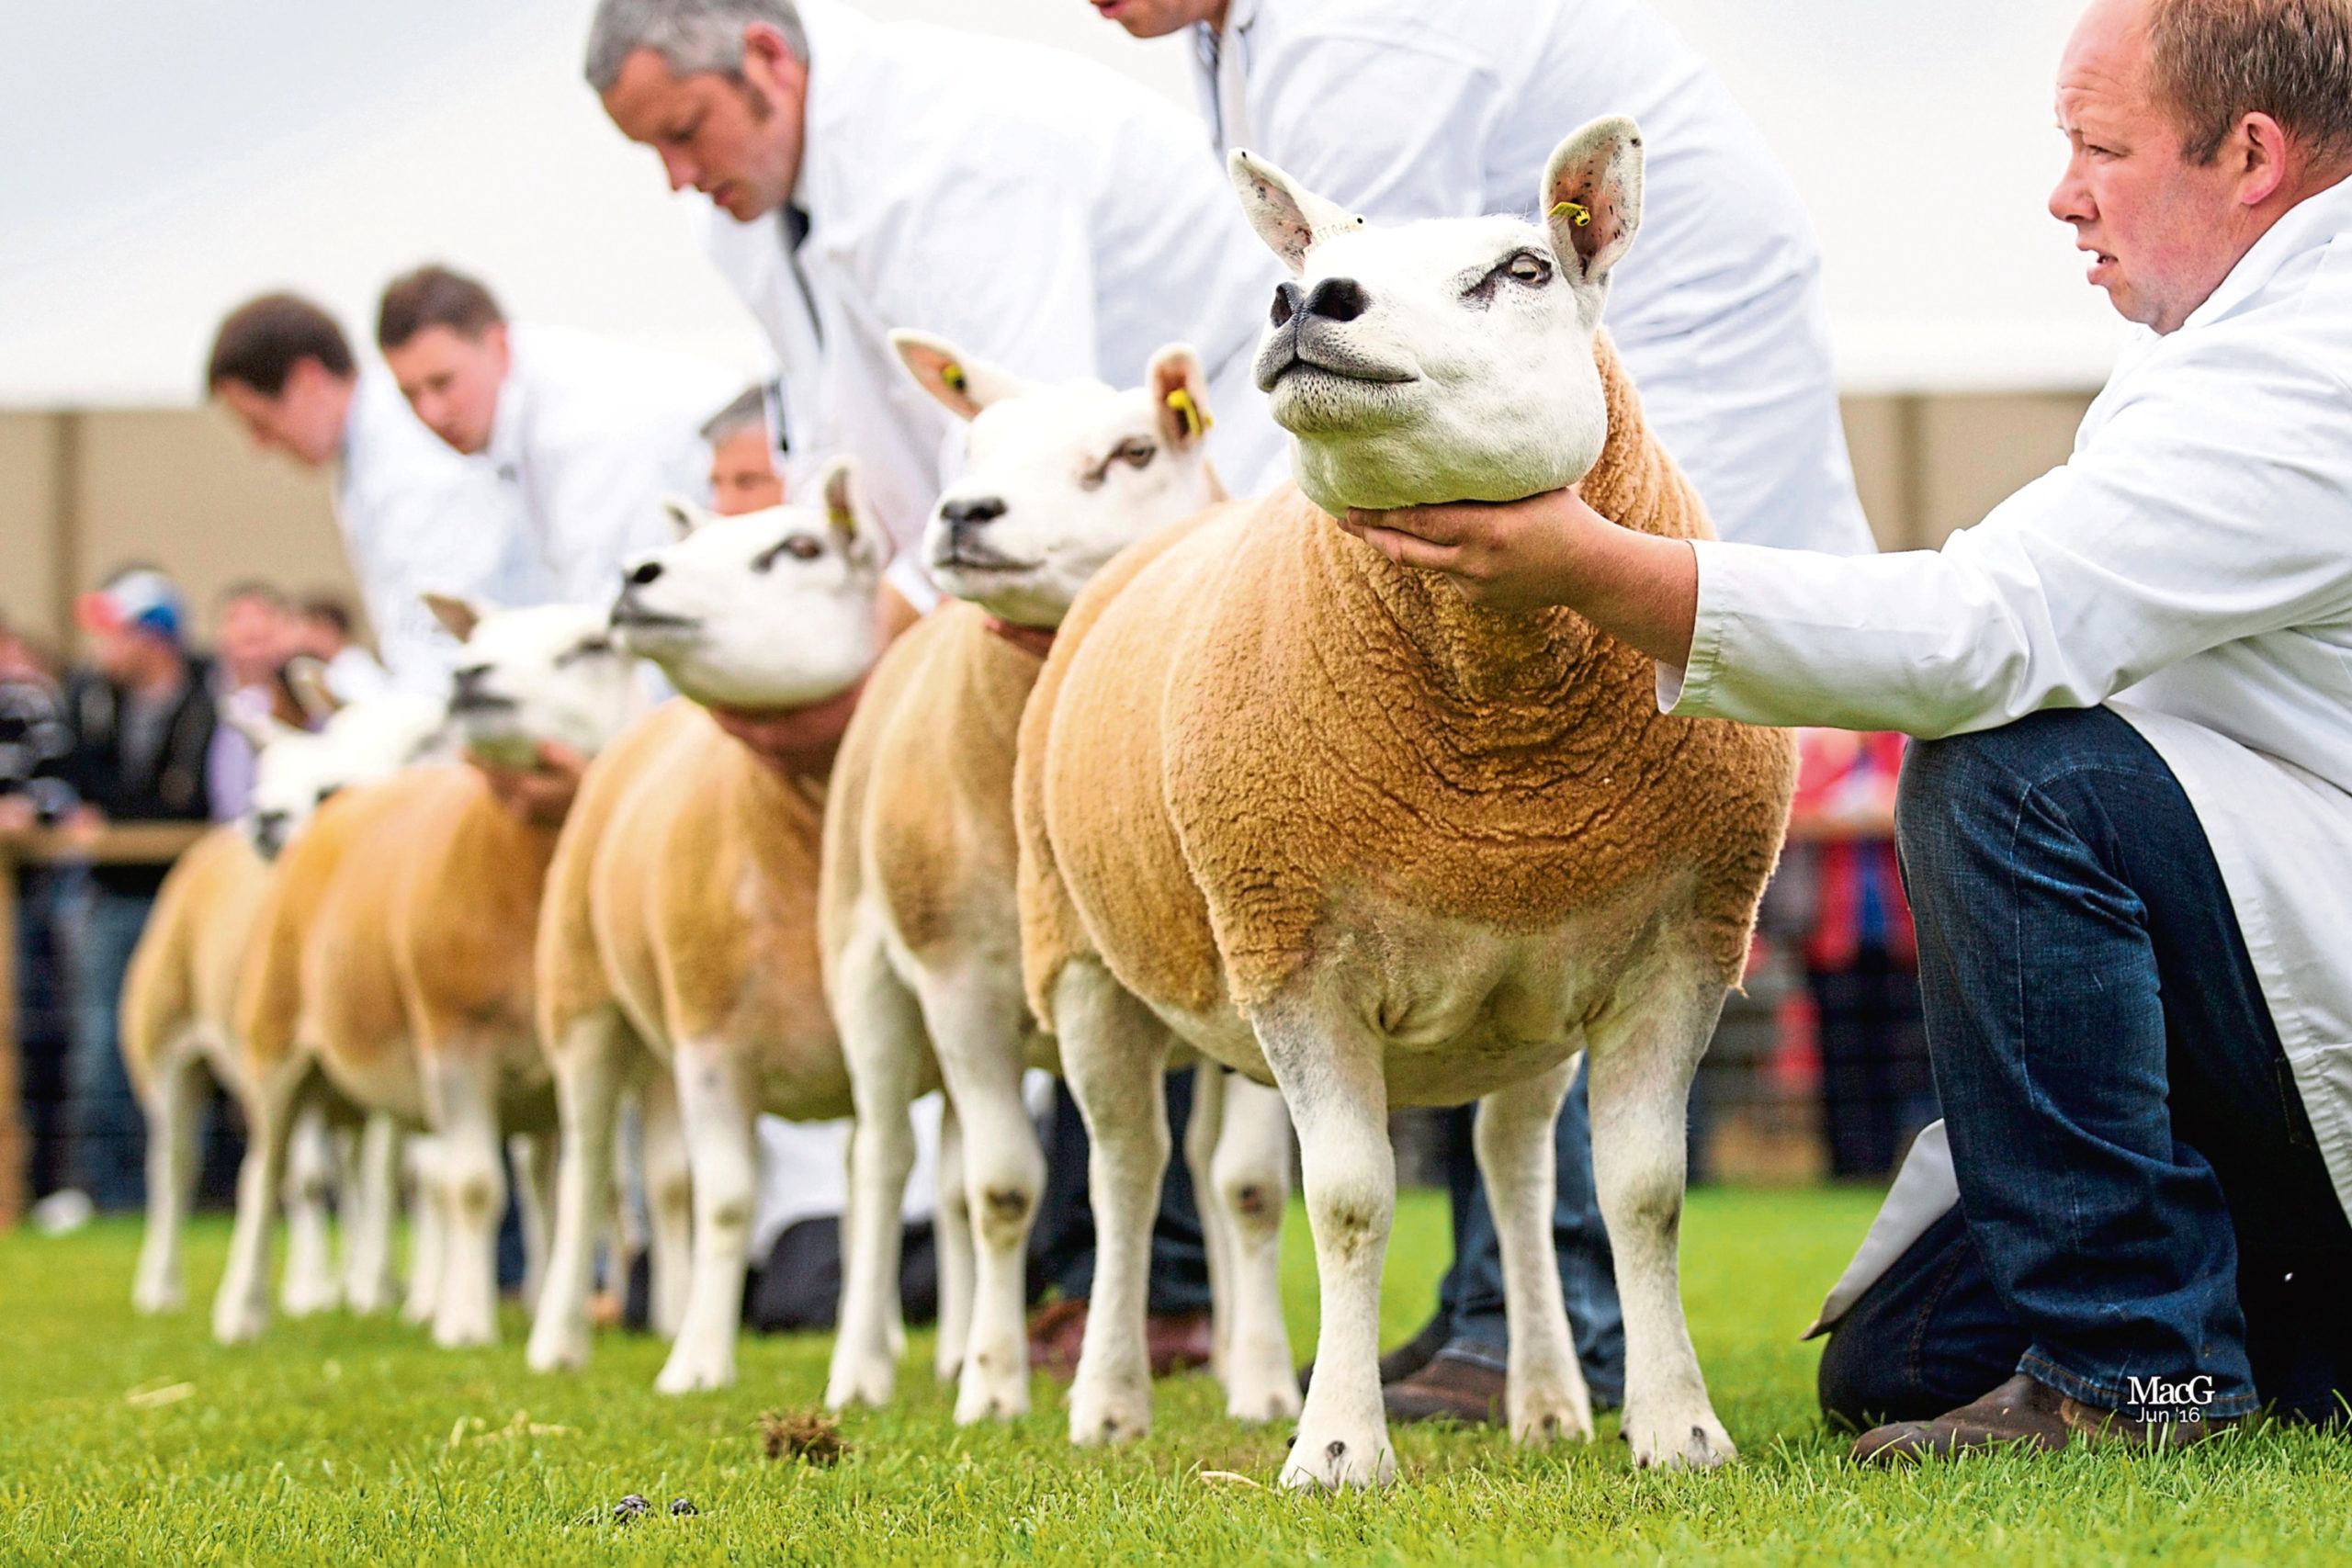 The Royal Highland Show  has been cancelled due to the coronavirus pandemic.